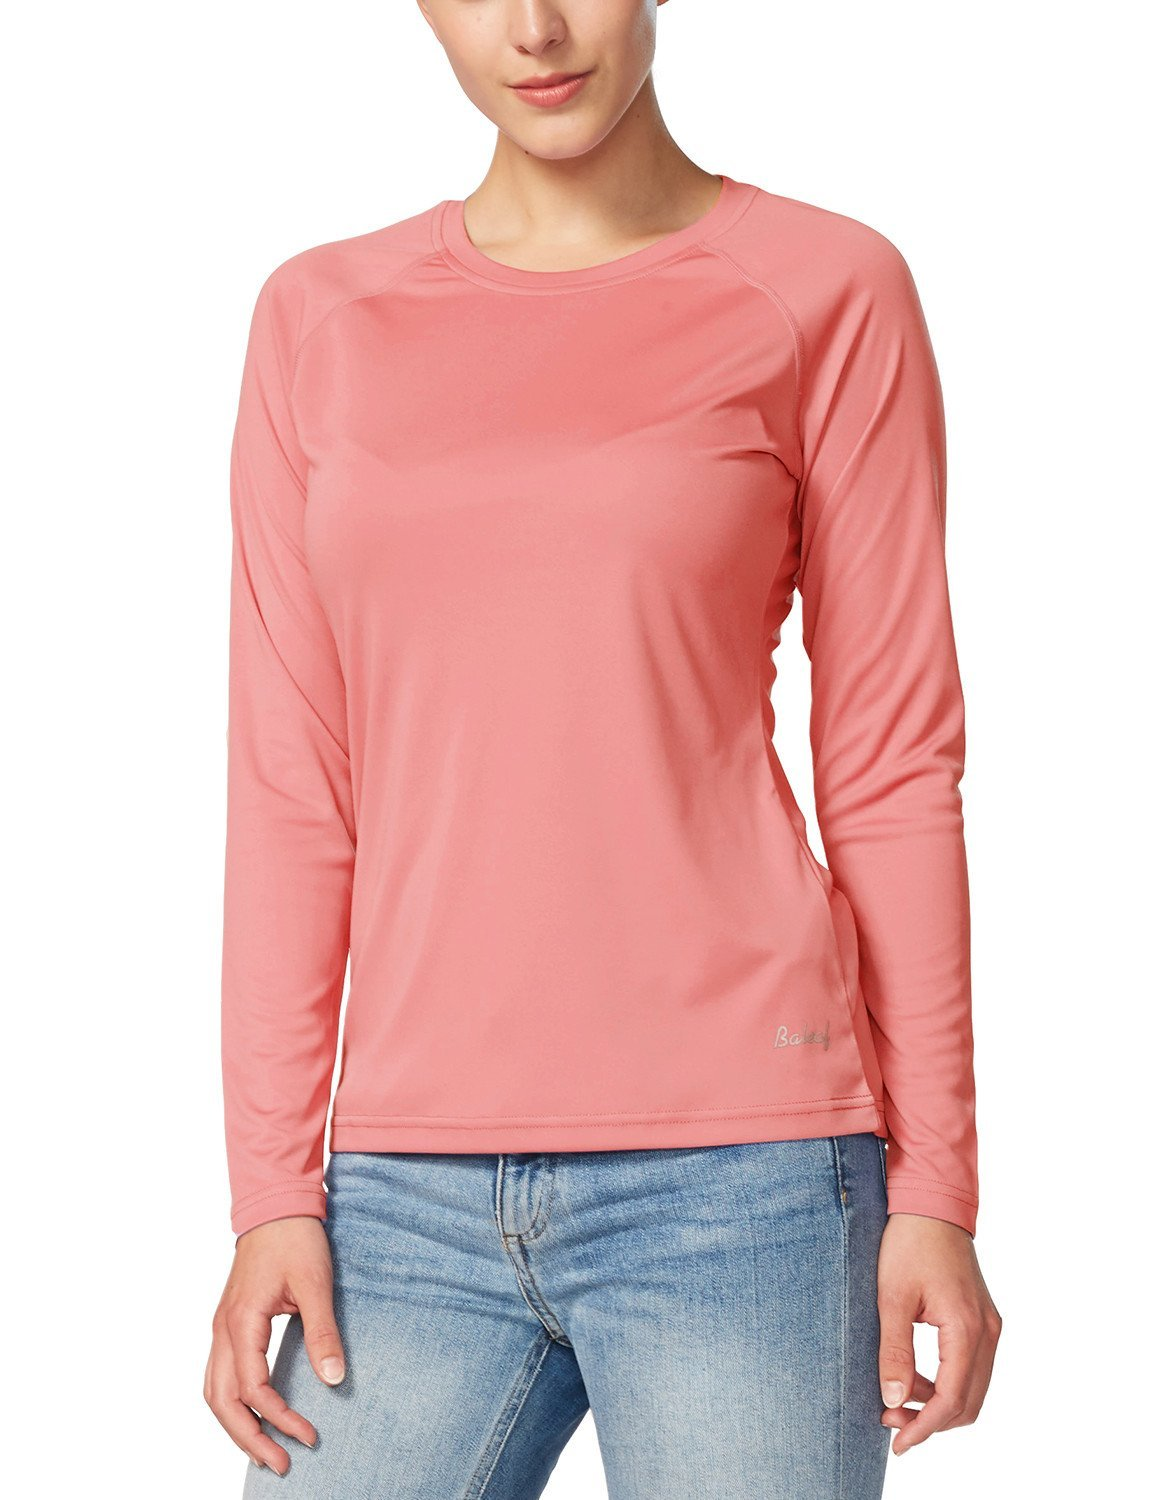 Baleaf Women's UPF 50+ Sun Protection Long Sleeve Outdoor Performance T-Shirt Pink Size S